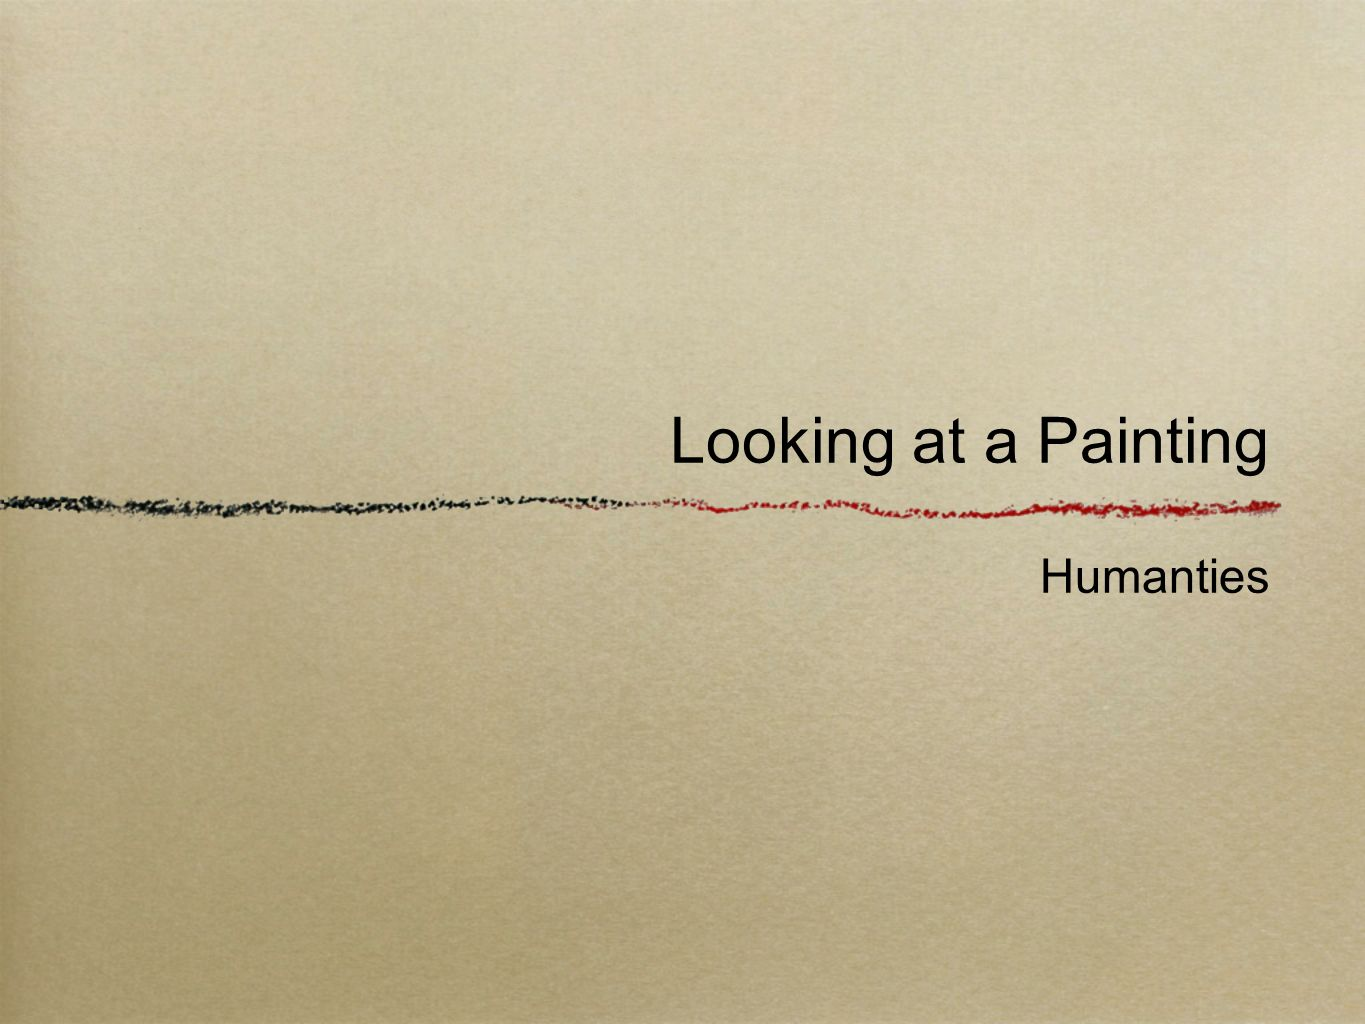 Looking at a Painting Humanties